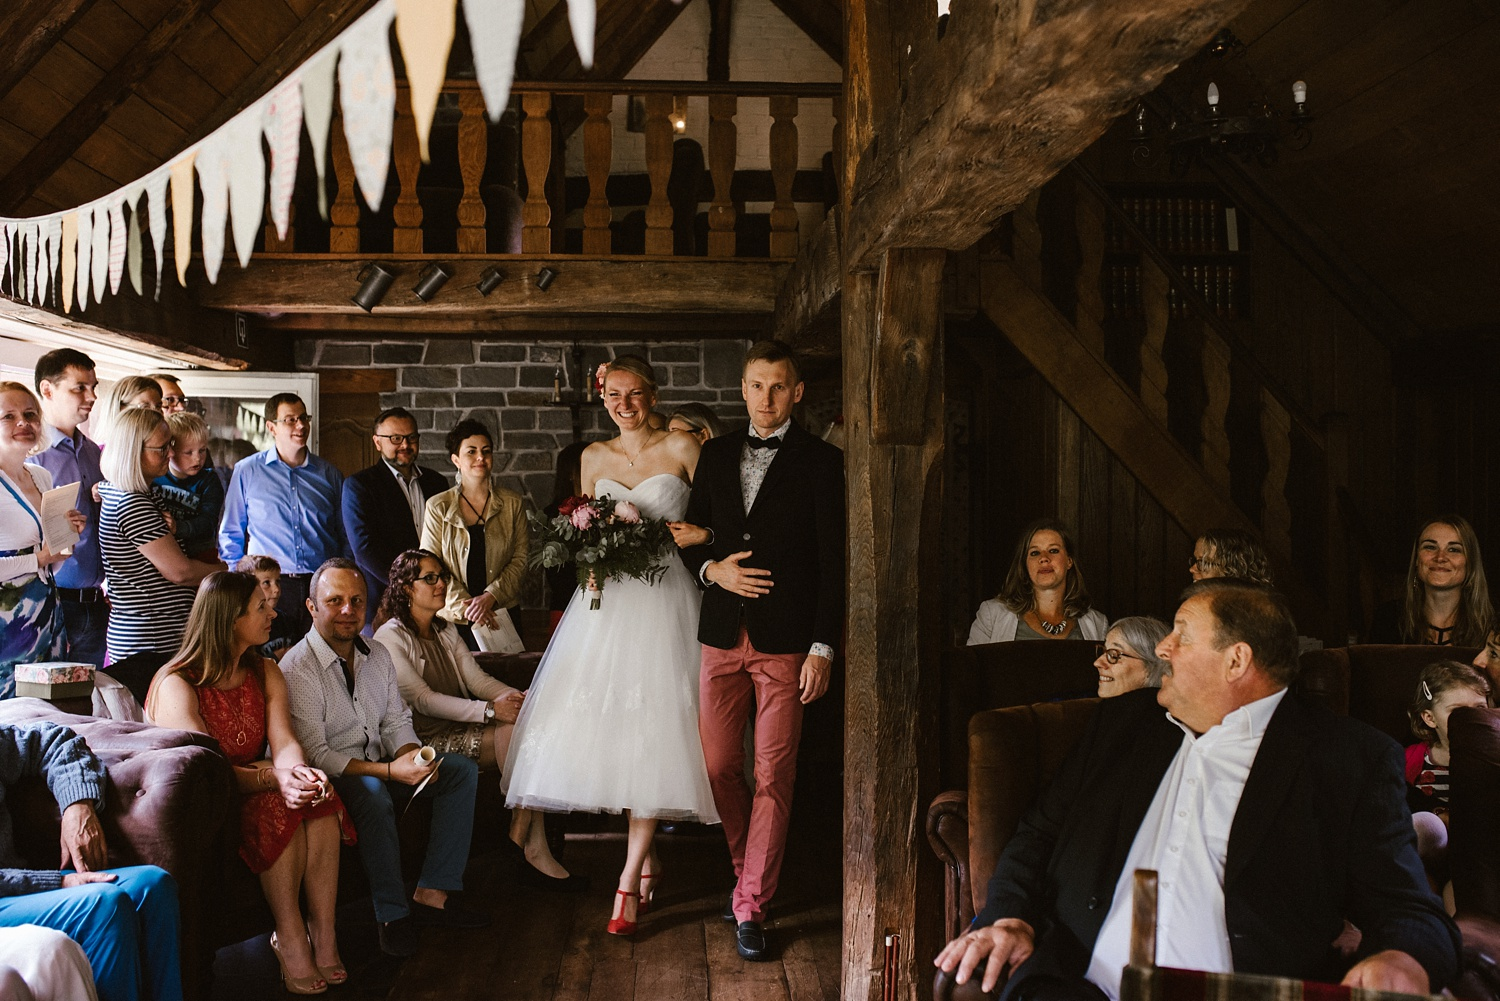 Wedding photographer Belgium Ardennes - Olle and Gosia_0021.jpg